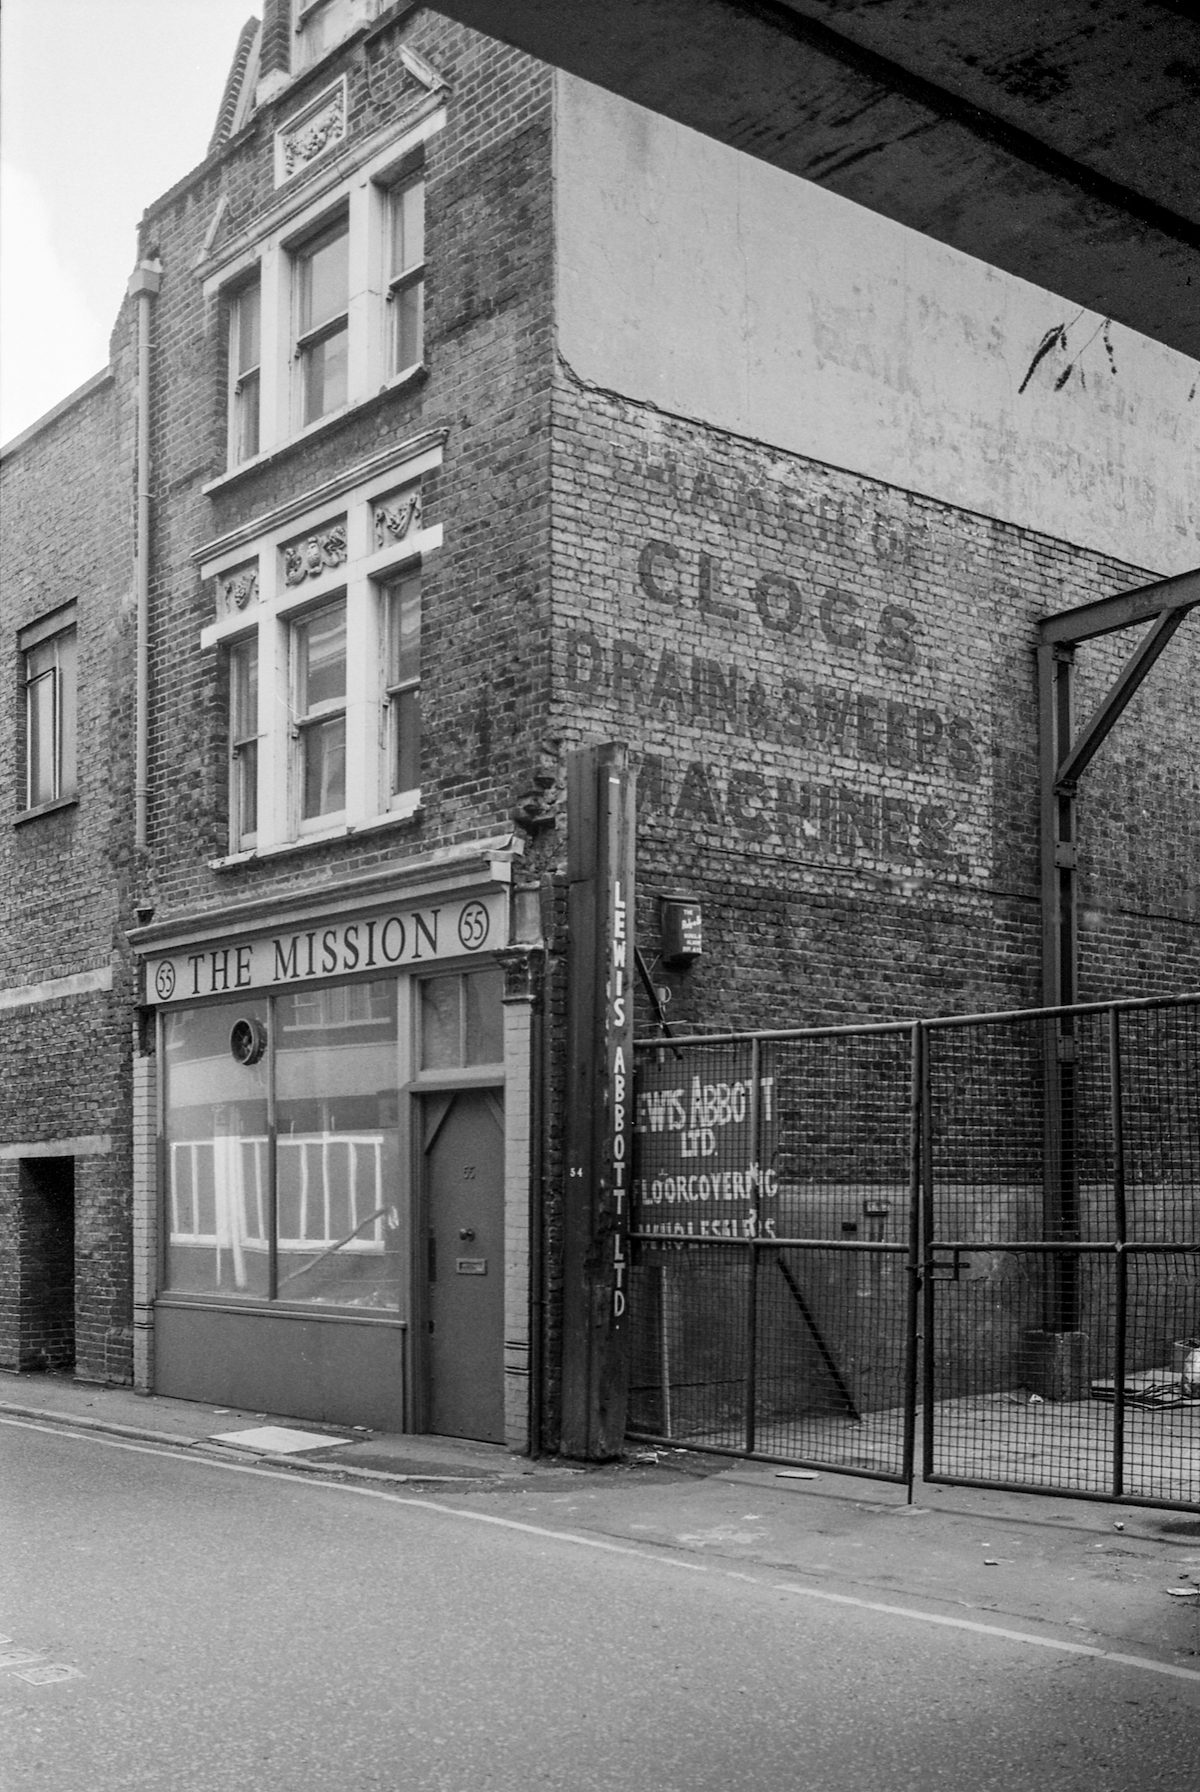 The Mission, Holywell Lane, Shoreditch, Hackney 86